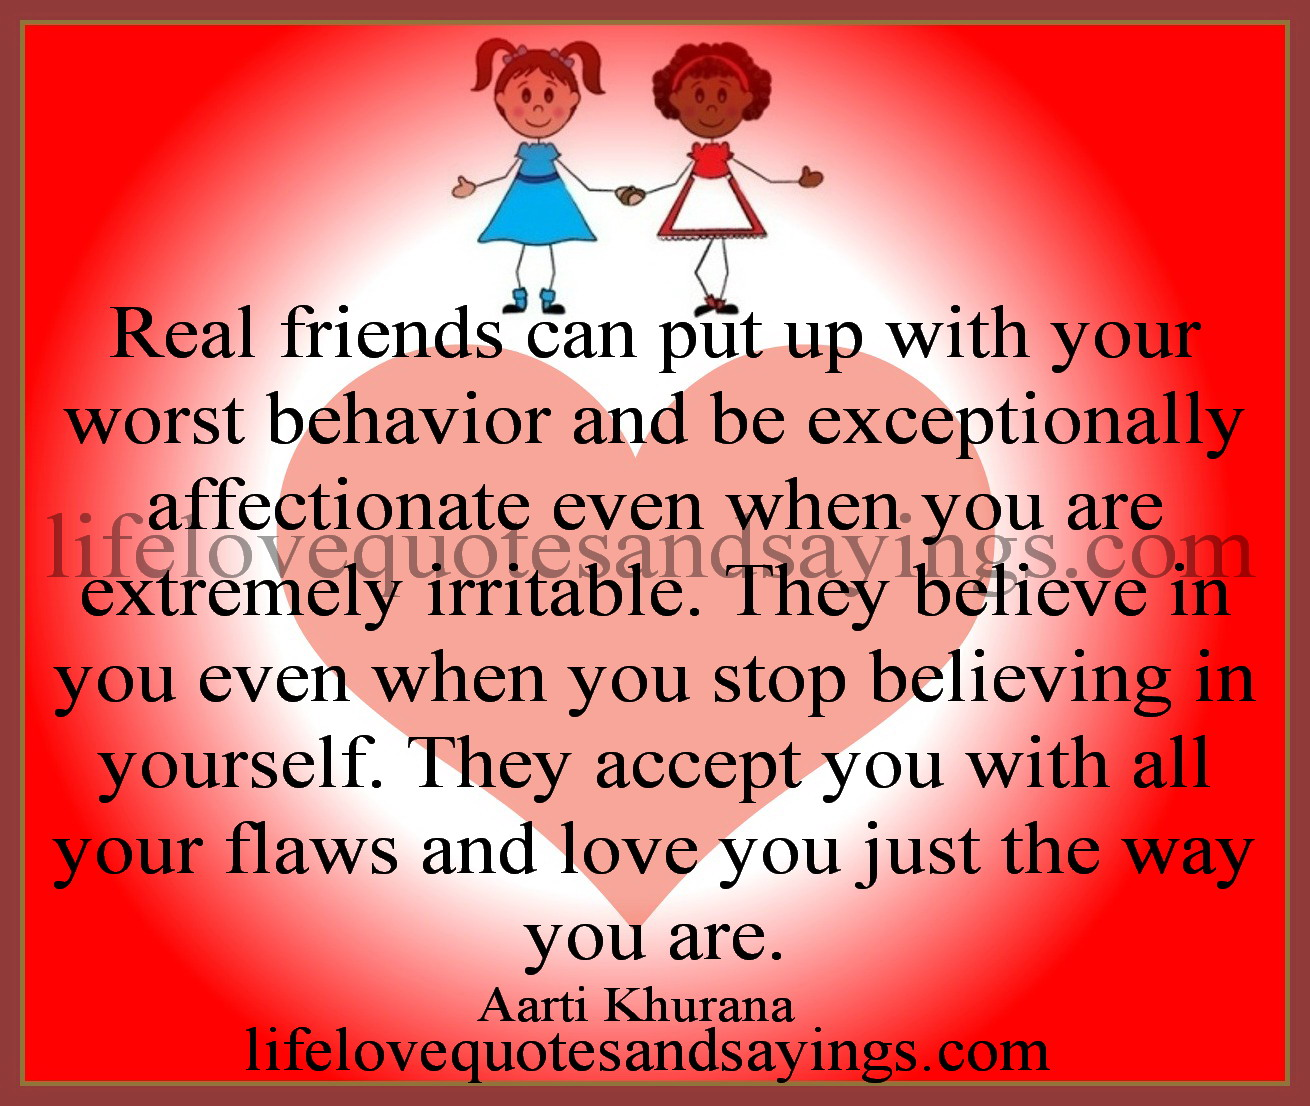 Love Finds You Quote: Real Friends Can Put Up With Your Worst Behavior And Be